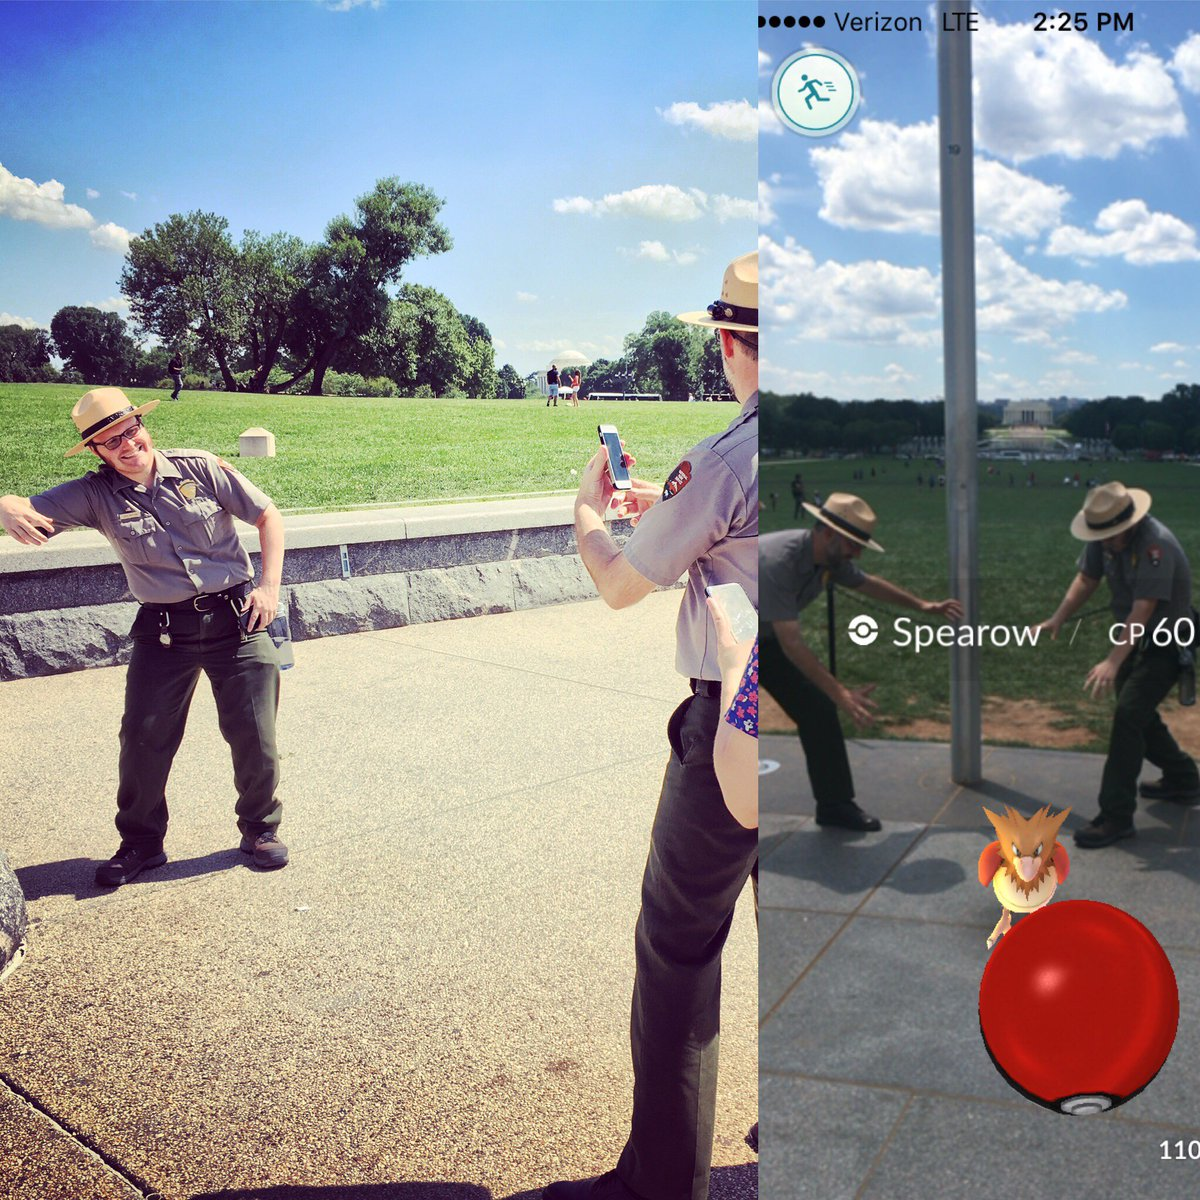 . @NationalMallNPS Park Rangers now welcome #PokemonGo tours. Follow them for details and outdoor fun  #innovategov https://t.co/jKHQlFgySo